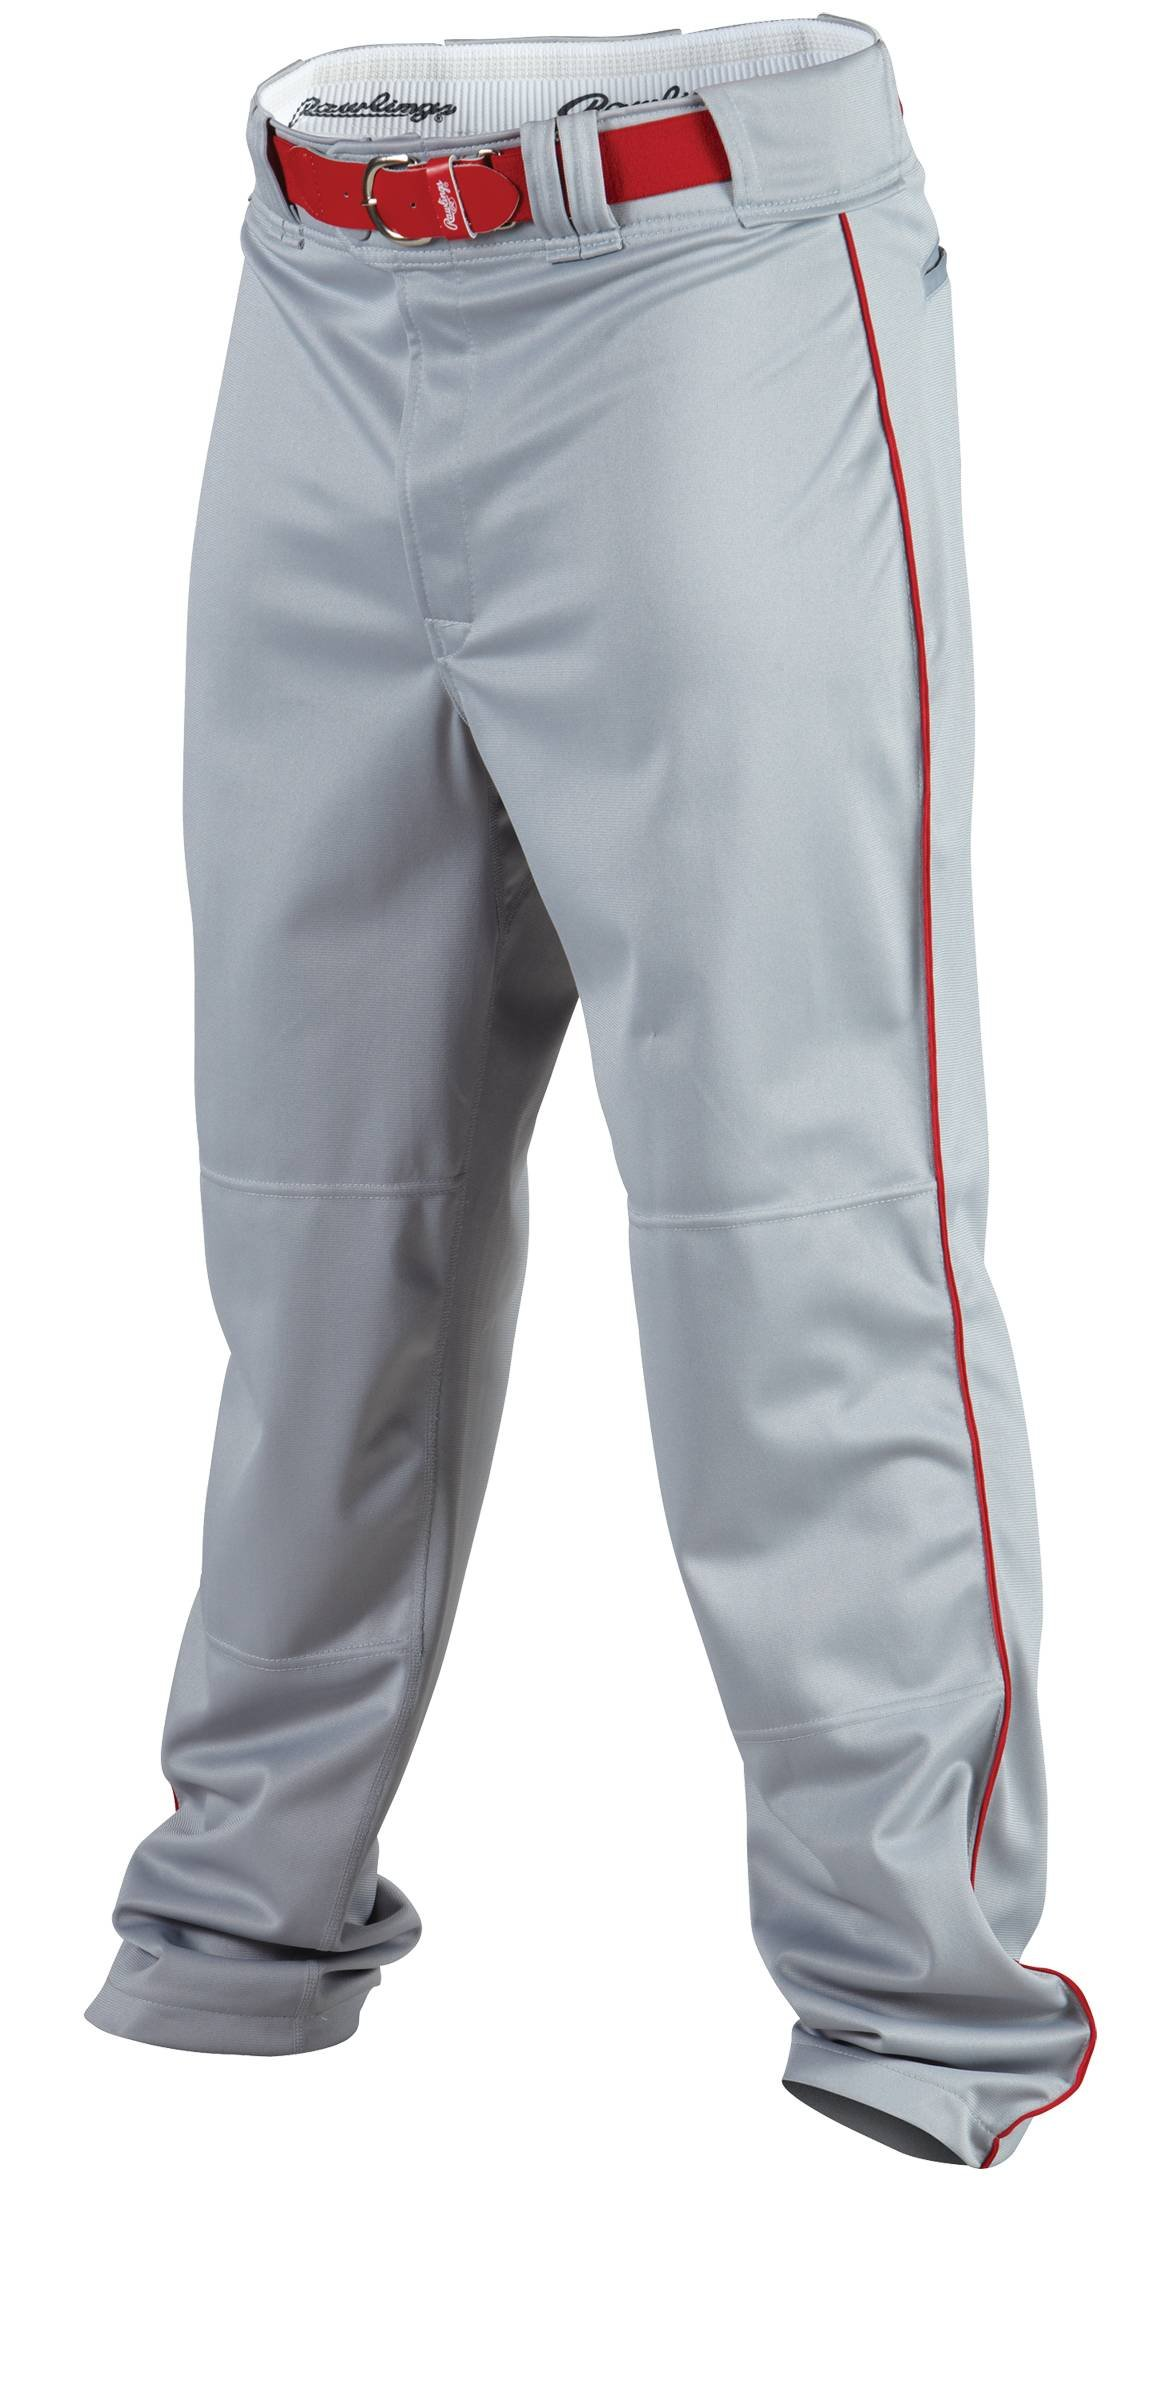 Rawlings Youth Baseball Pant (Blue Grey/Scarlet, XX-Large) by Rawlings